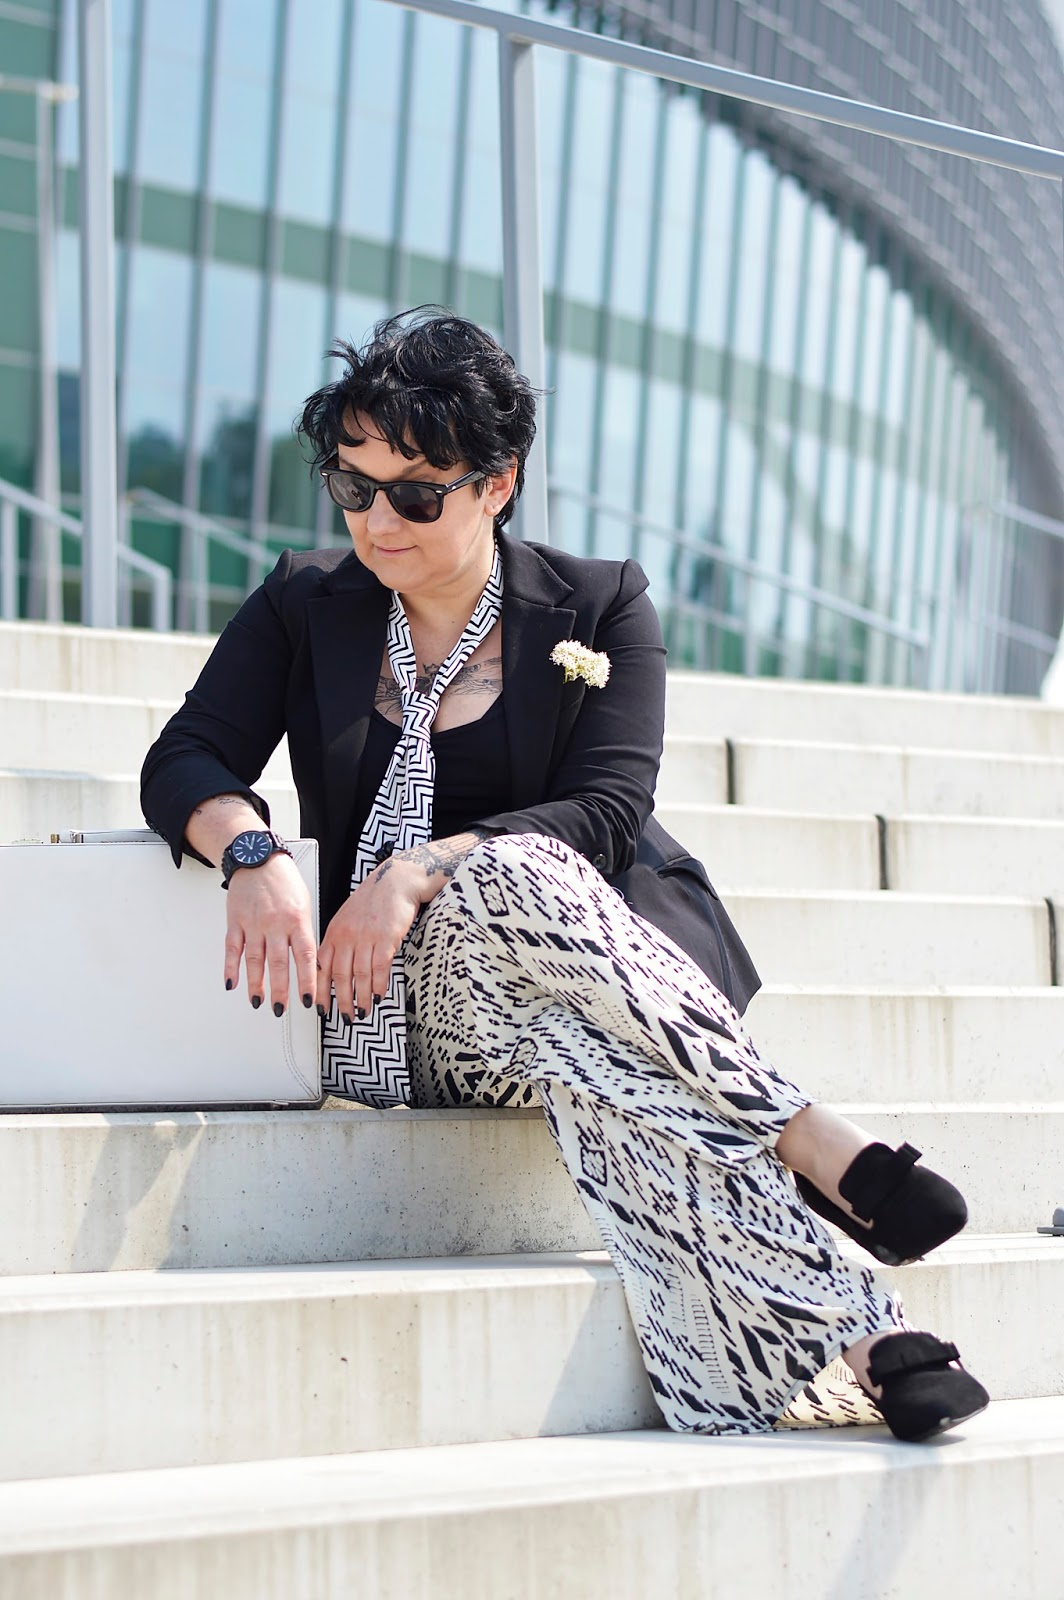 Black and white style, spring stylization, spring 2018, spring trends